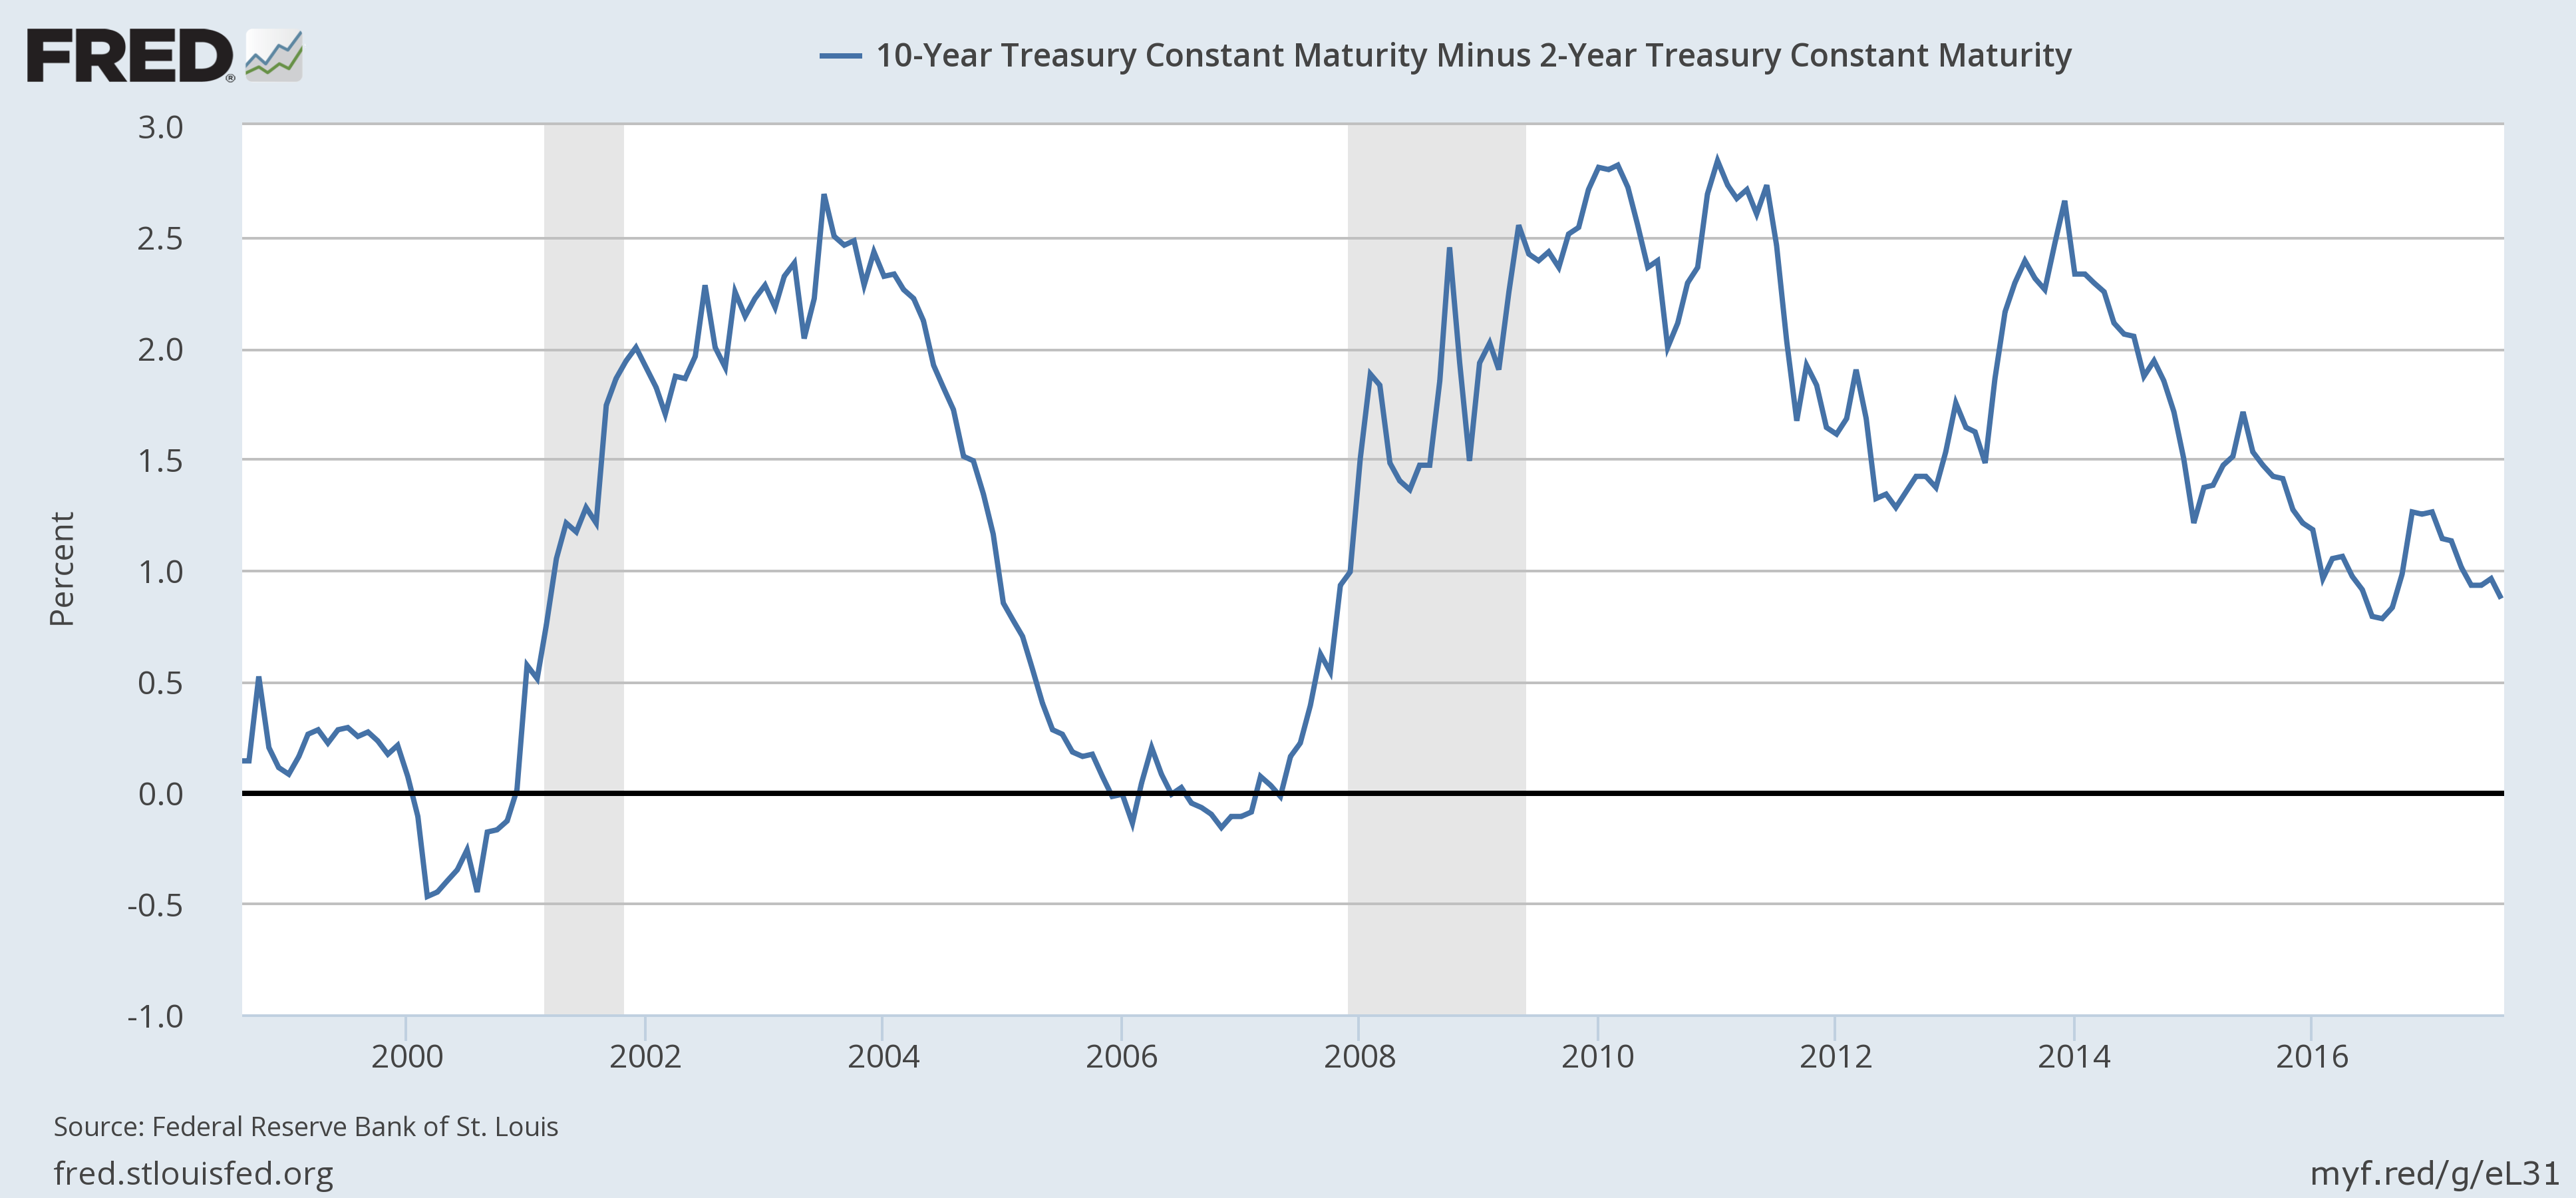 US 10 Year Treasury Constant Maturity minus 2 Year Treasury, 1990 - 2017